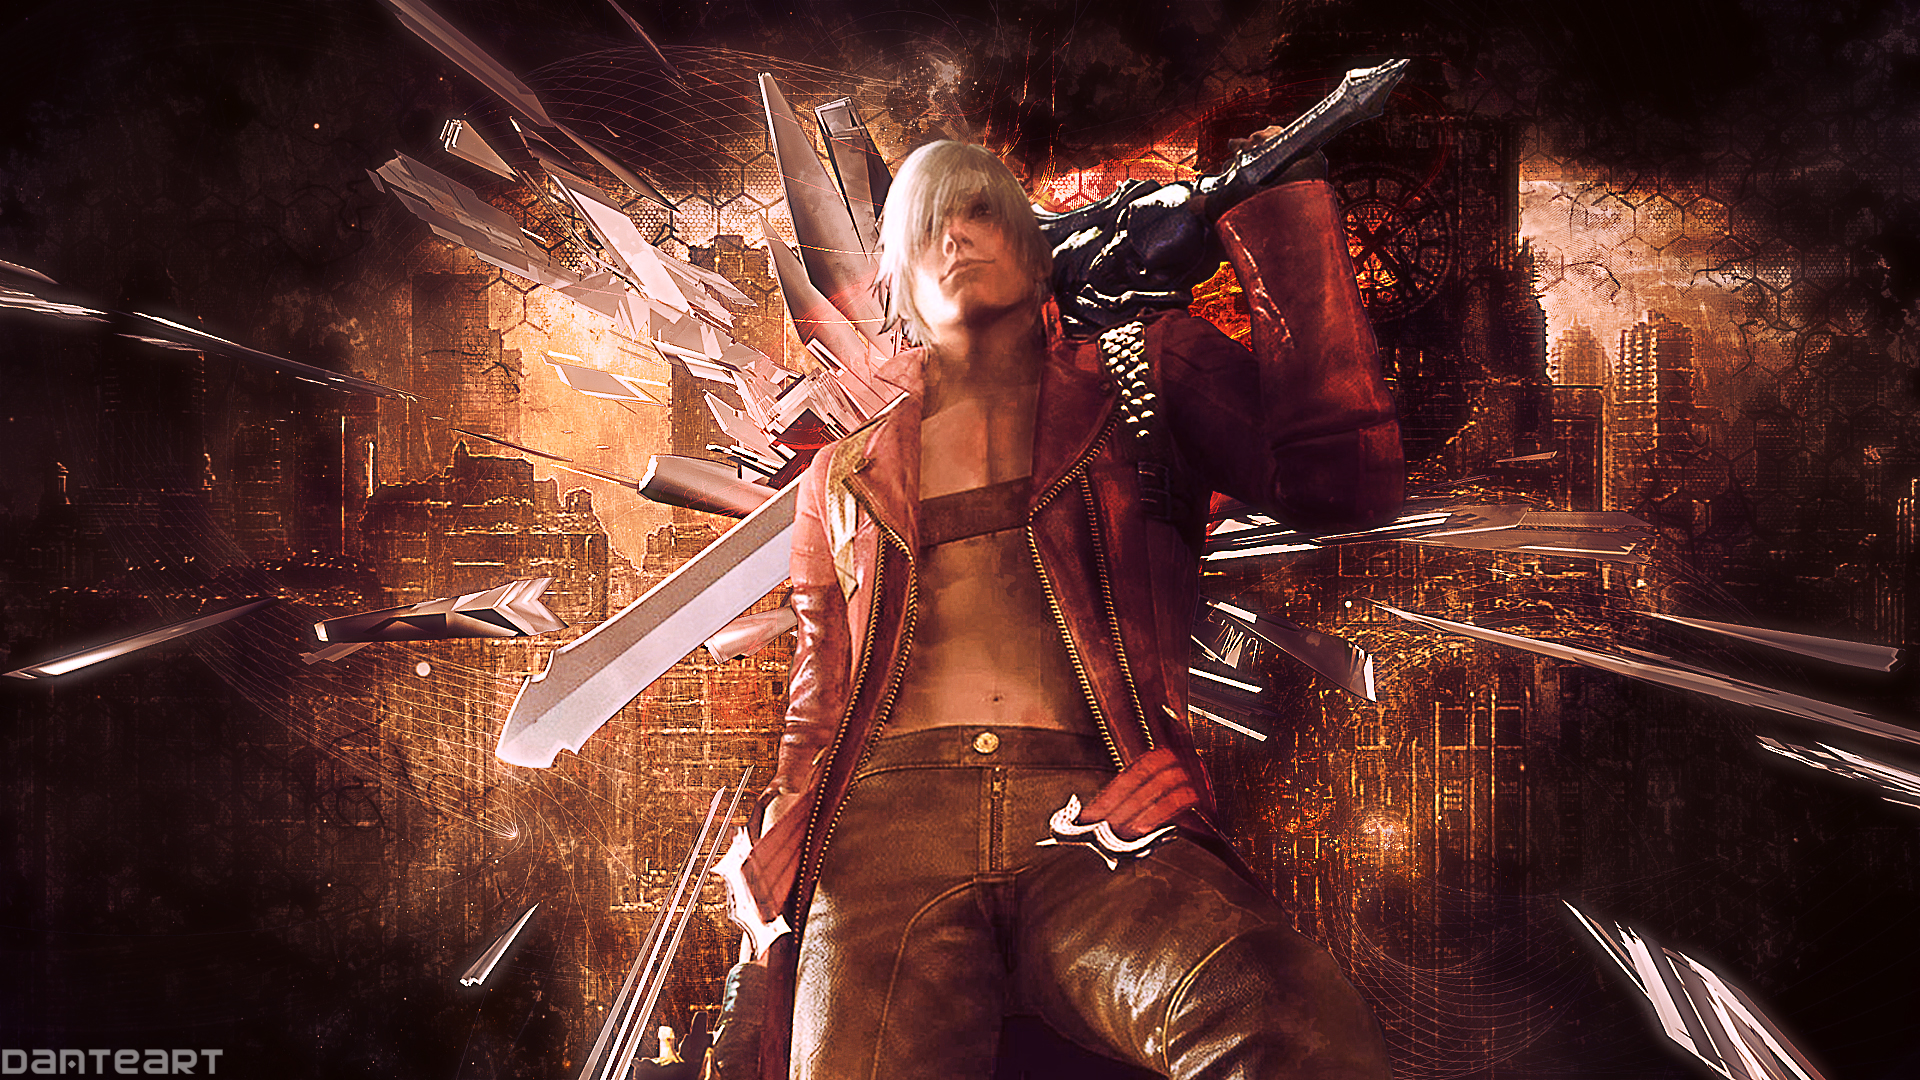 Devil may cry 4 dante wallpaper hd pc devil may cry 4 dante devil may cry 4 dante wallpaper hd voltagebd Images